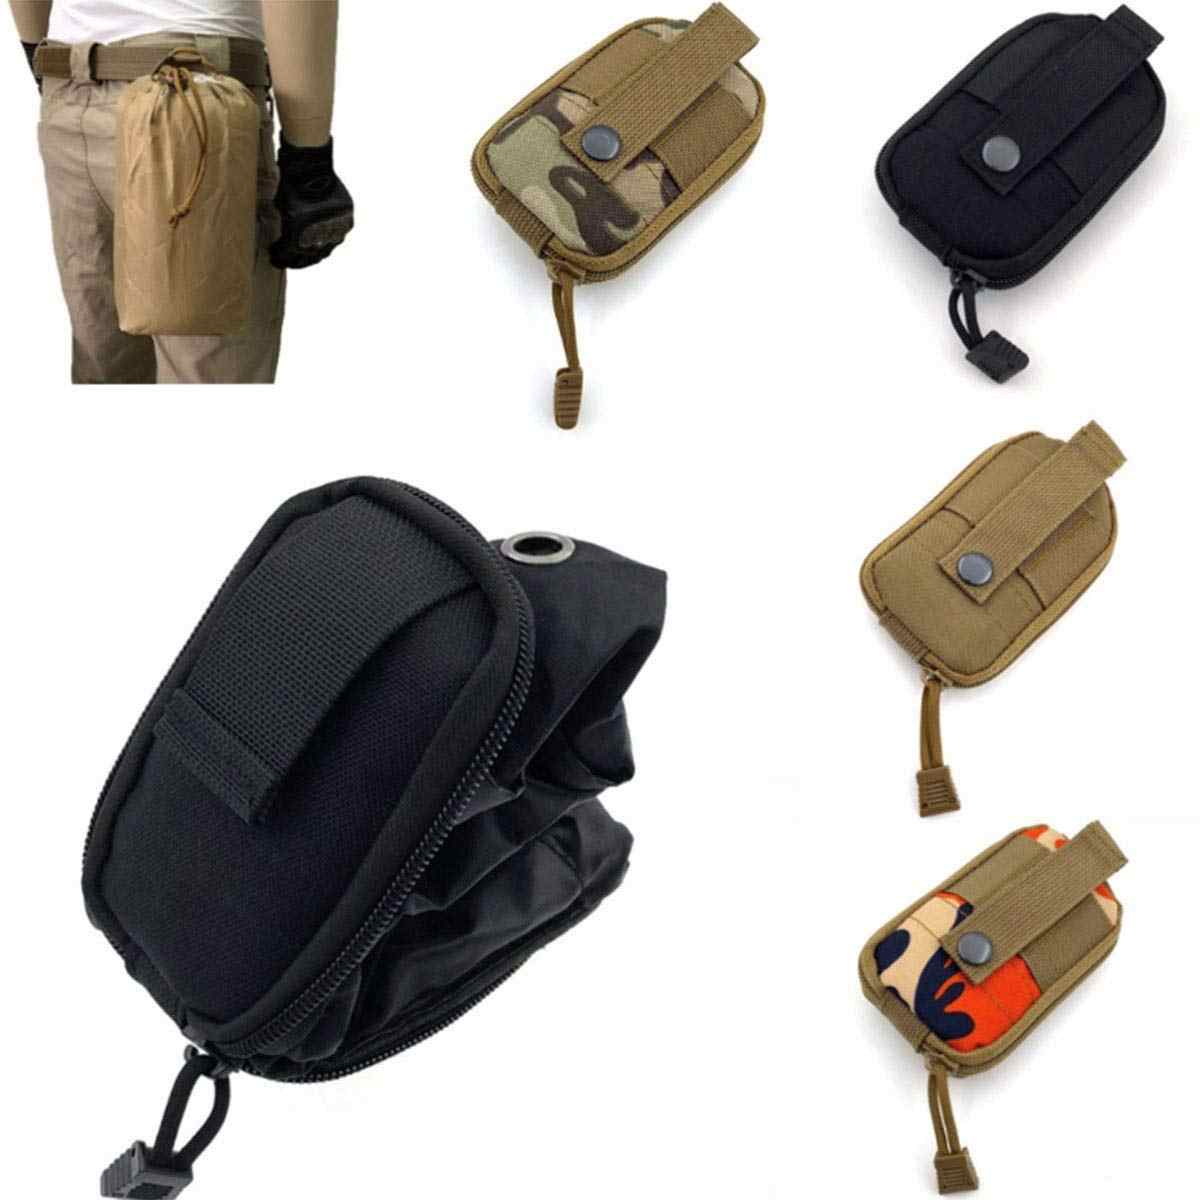 c6bcc54ed661 Tactical Molle Dump Pouch Drawstring Spacious Folding EDC Bag Military  Holster Pack Outdoor Water Bottle Ammo Pouch